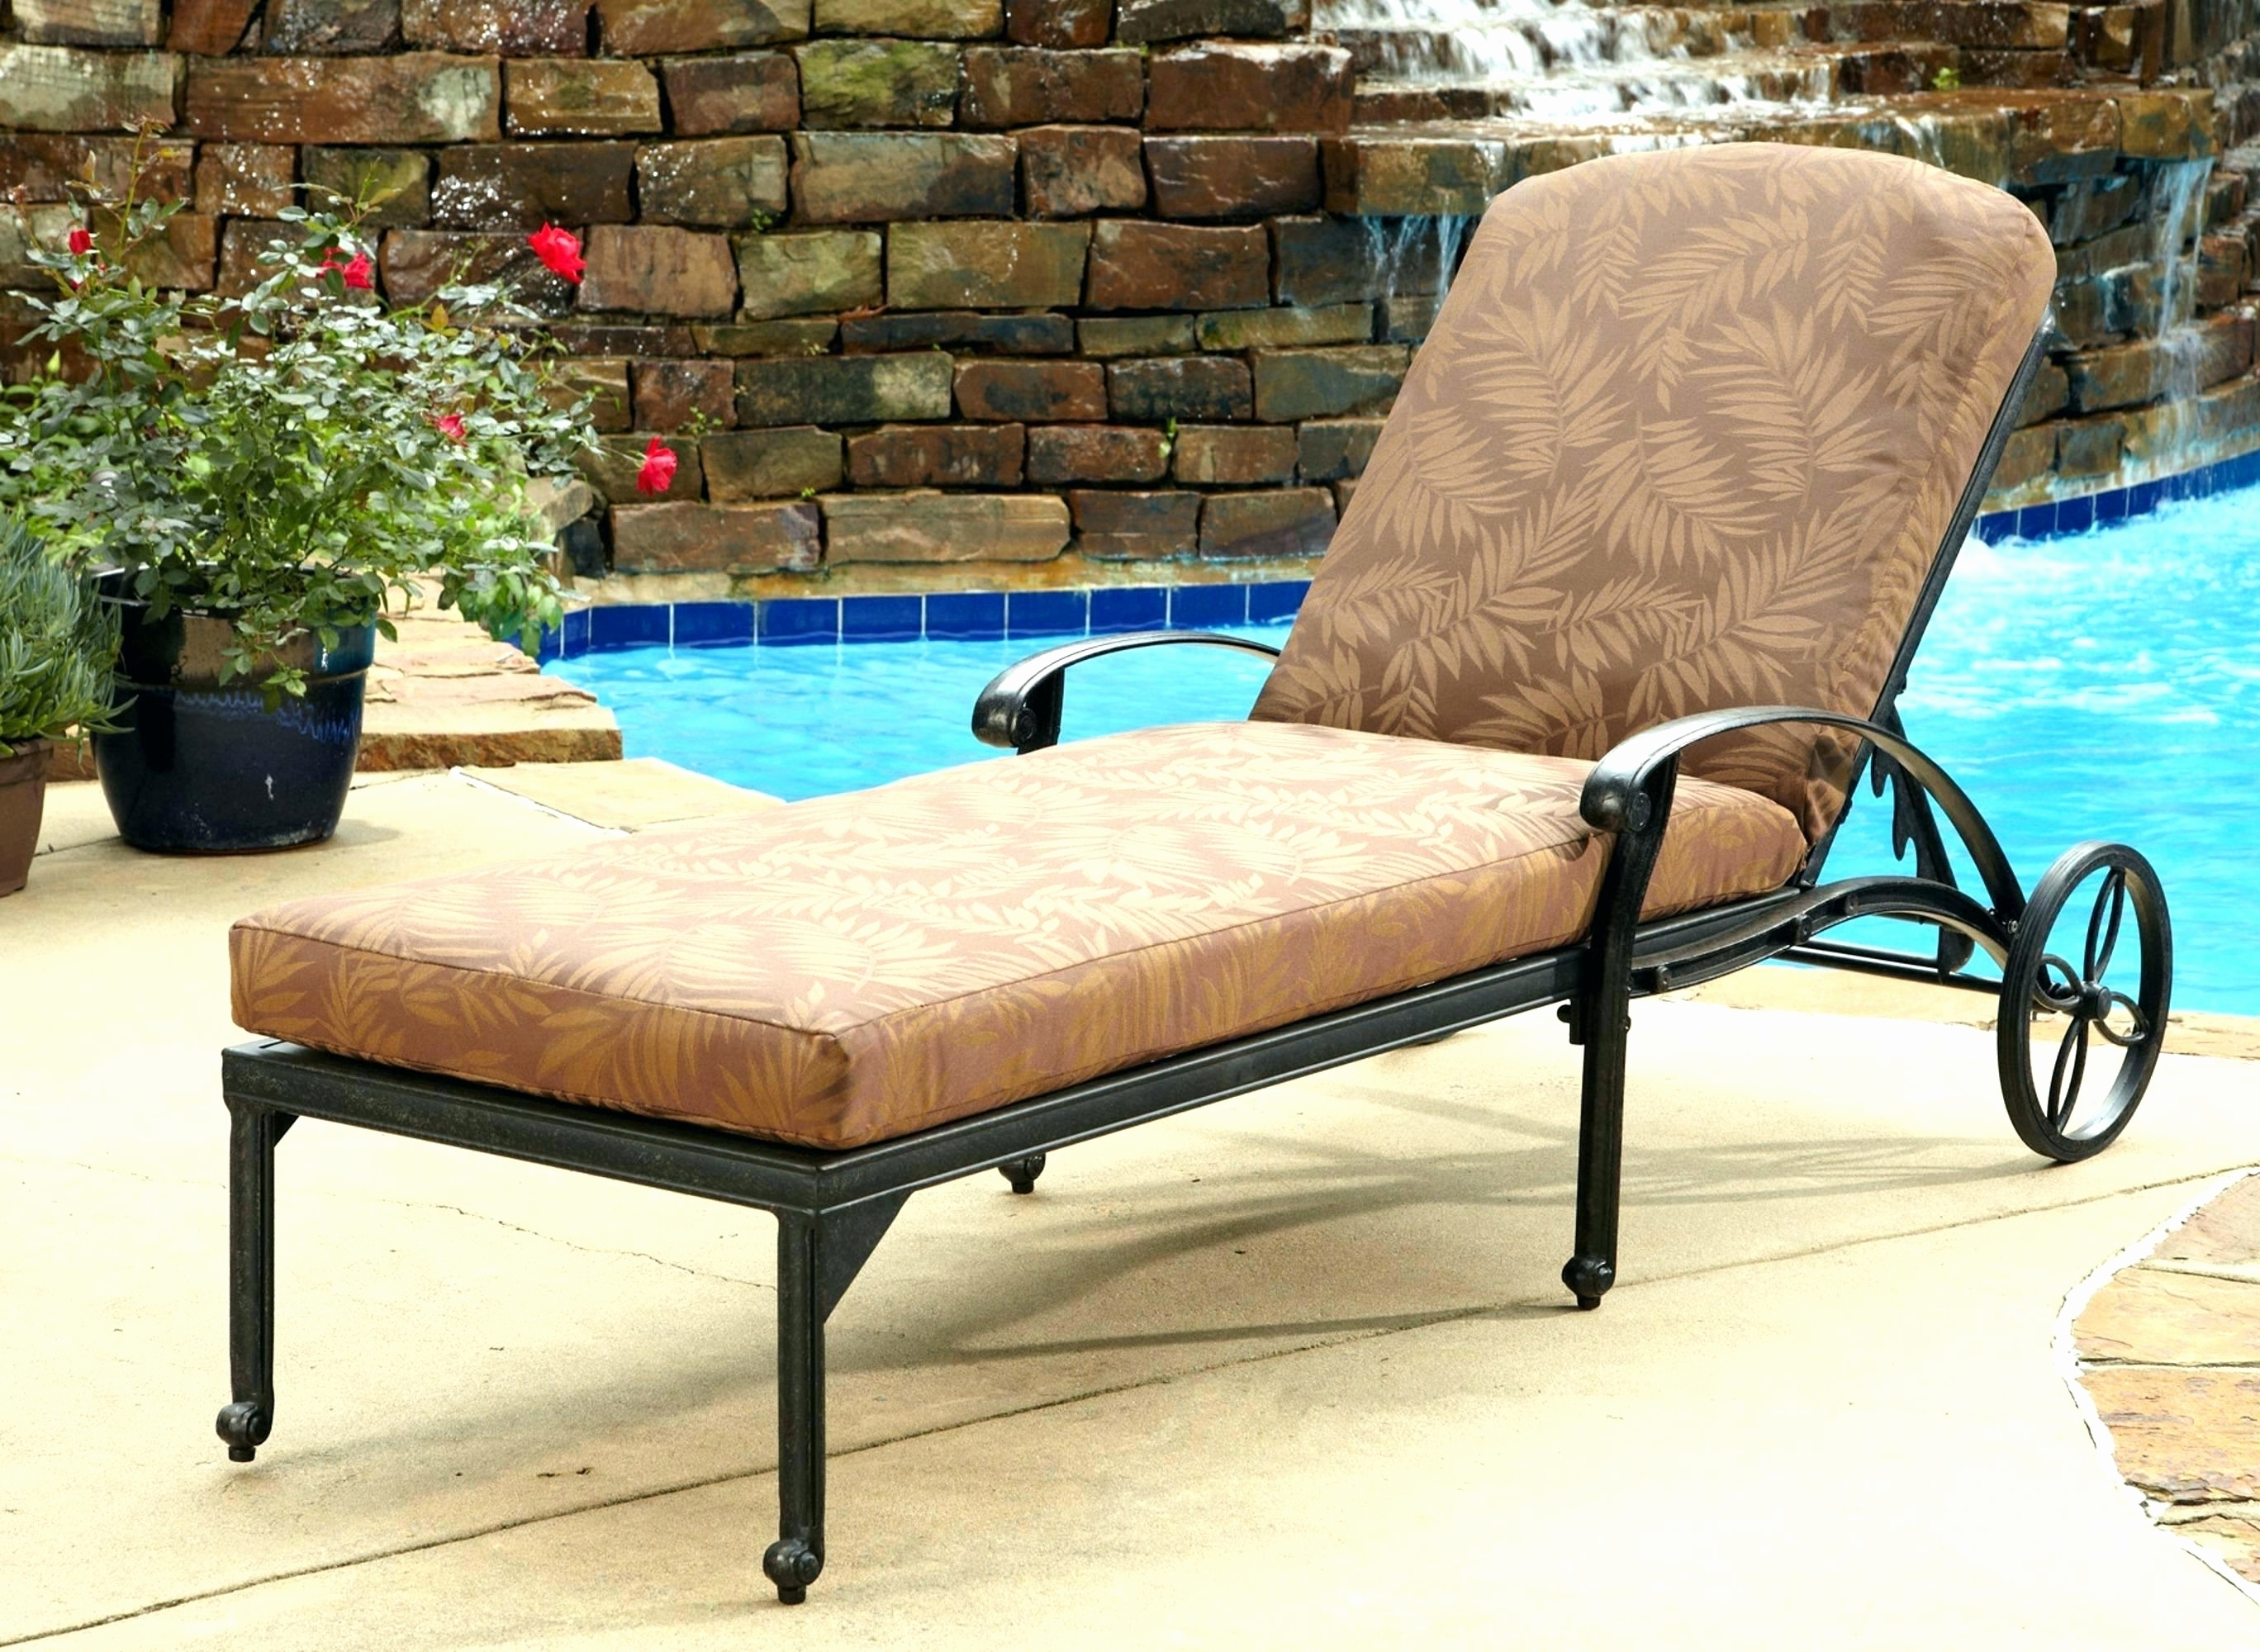 Chaise Lounge Lawn Chairs Intended For 2018 Convertible Chair : Lawn Chair Cheap Lounge Chairs Double Chaise (View 4 of 15)